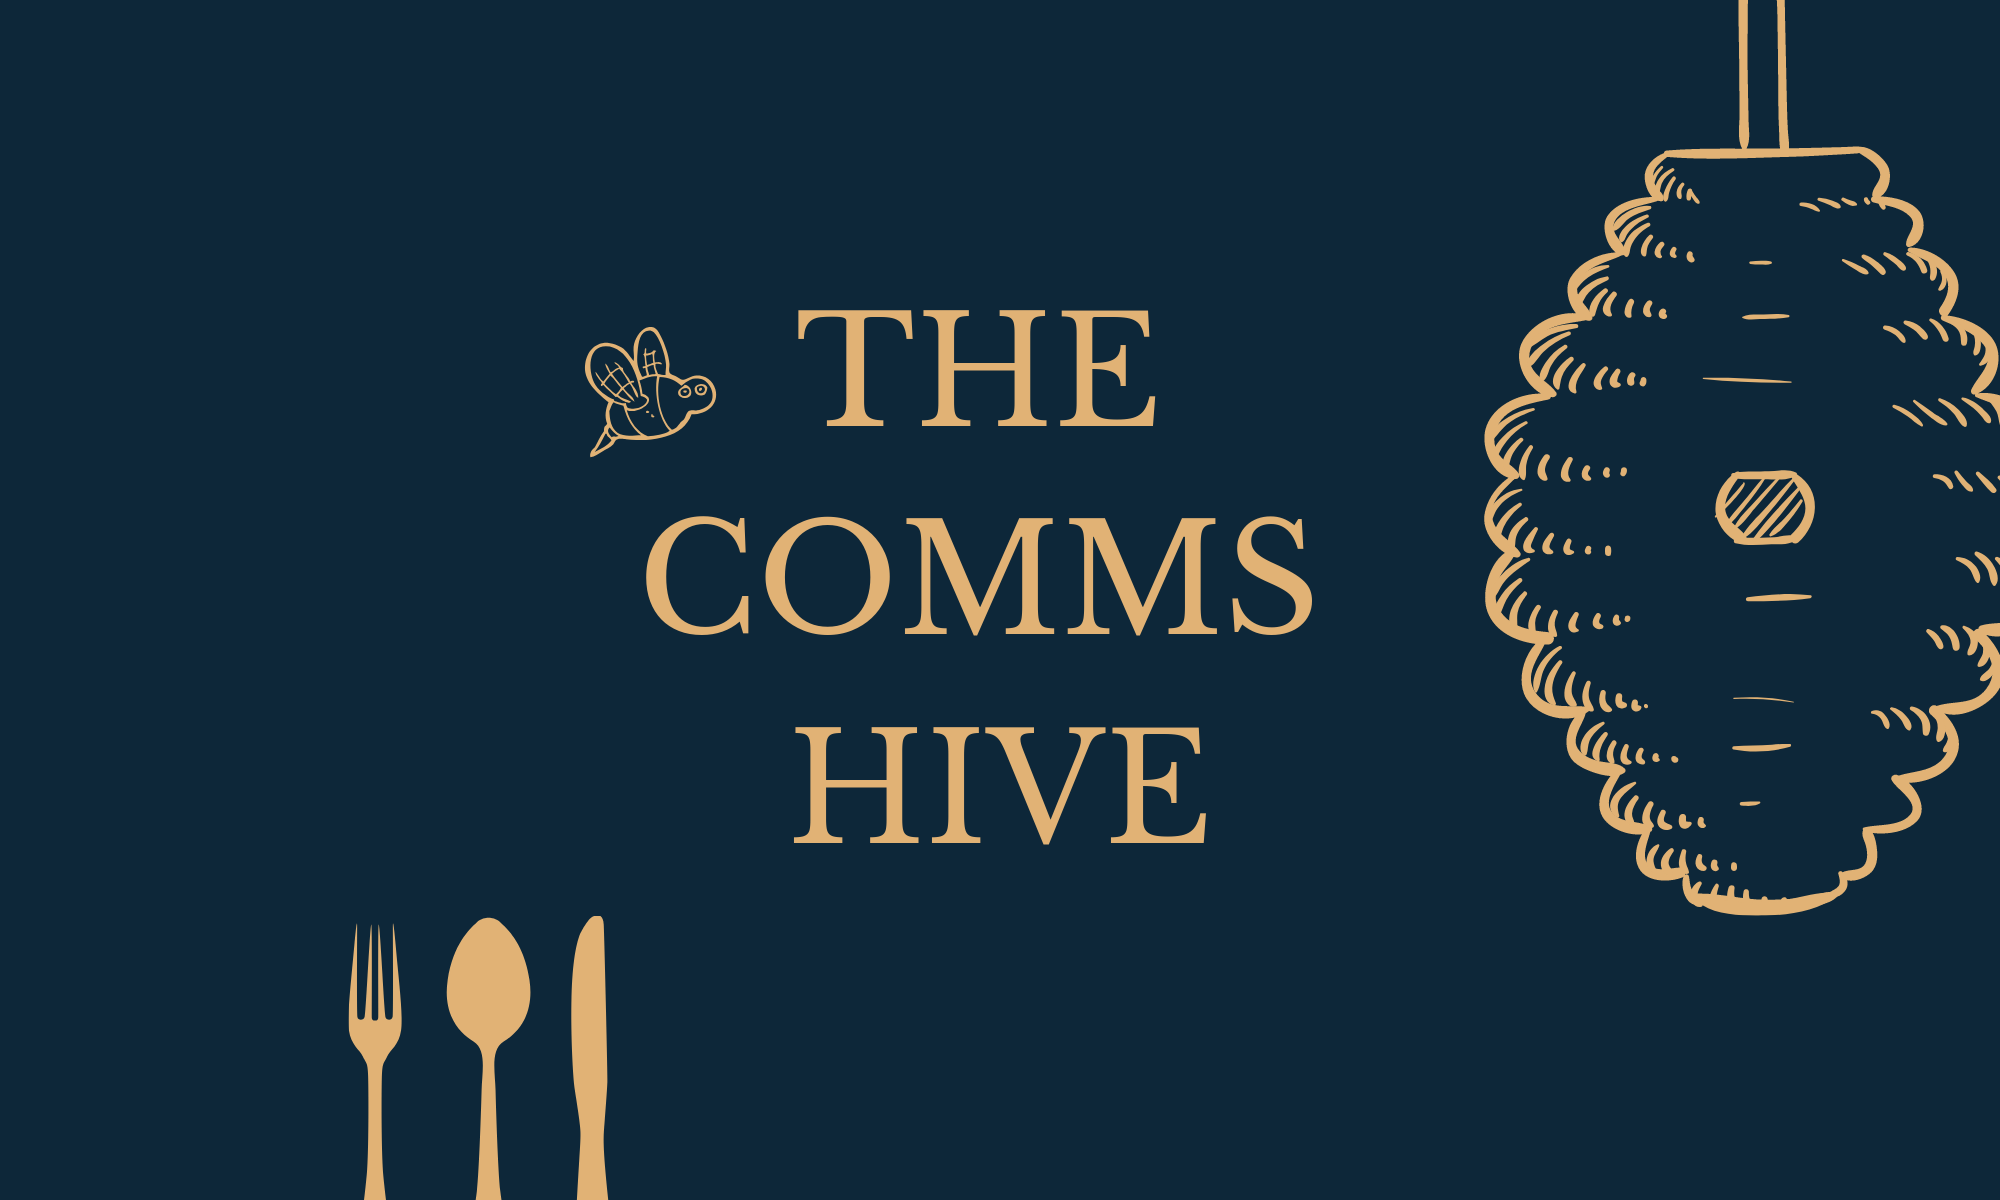 The Comms Hive